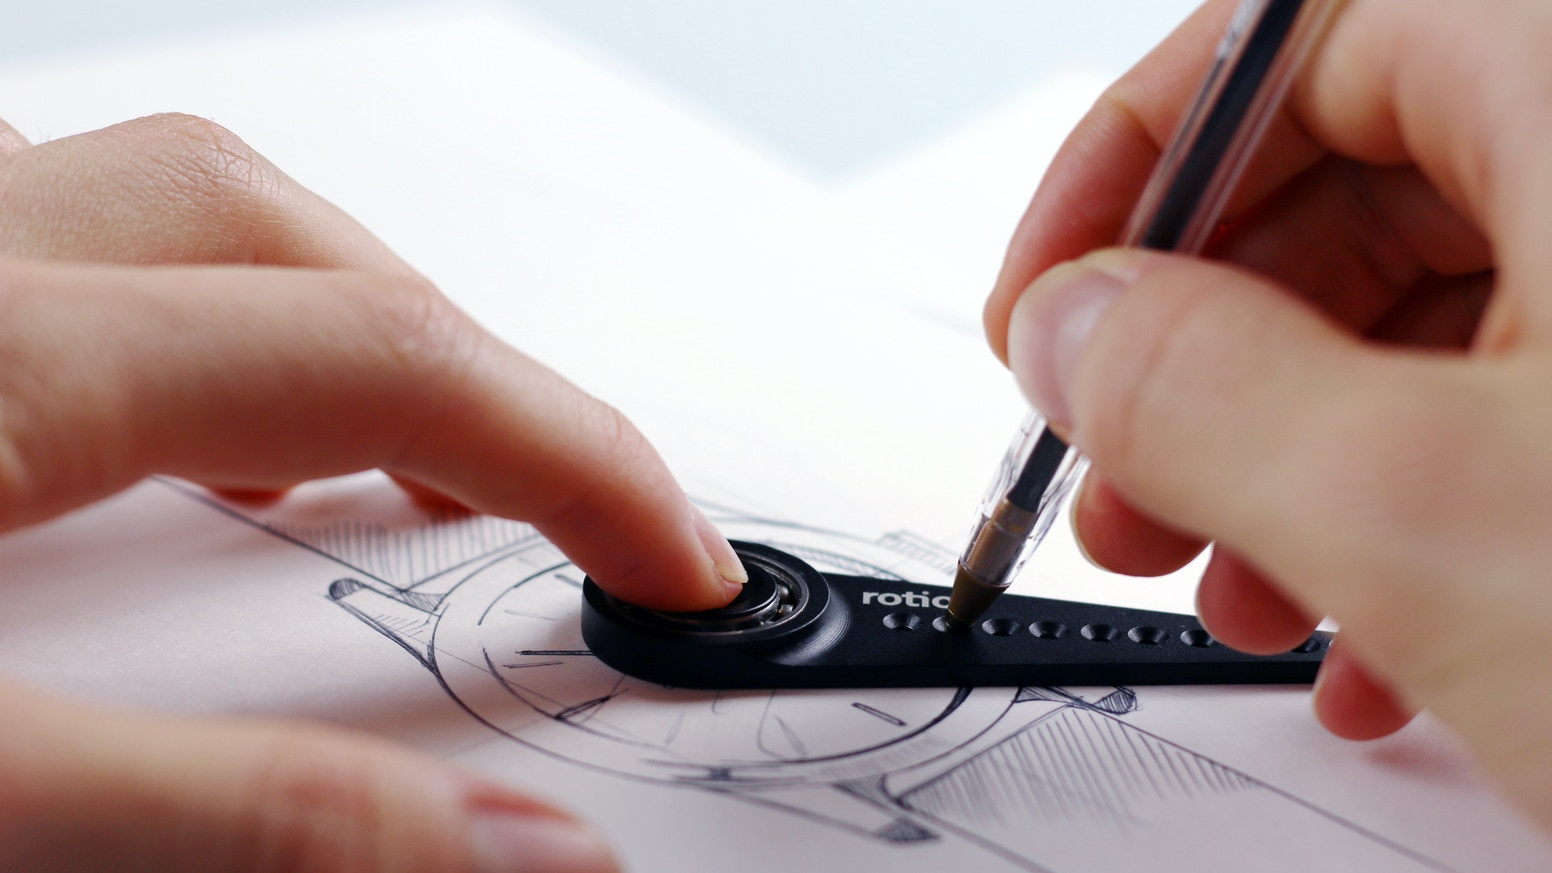 Rotio Compass The Most Intuitive Design Tool By Rotio Kickstarter